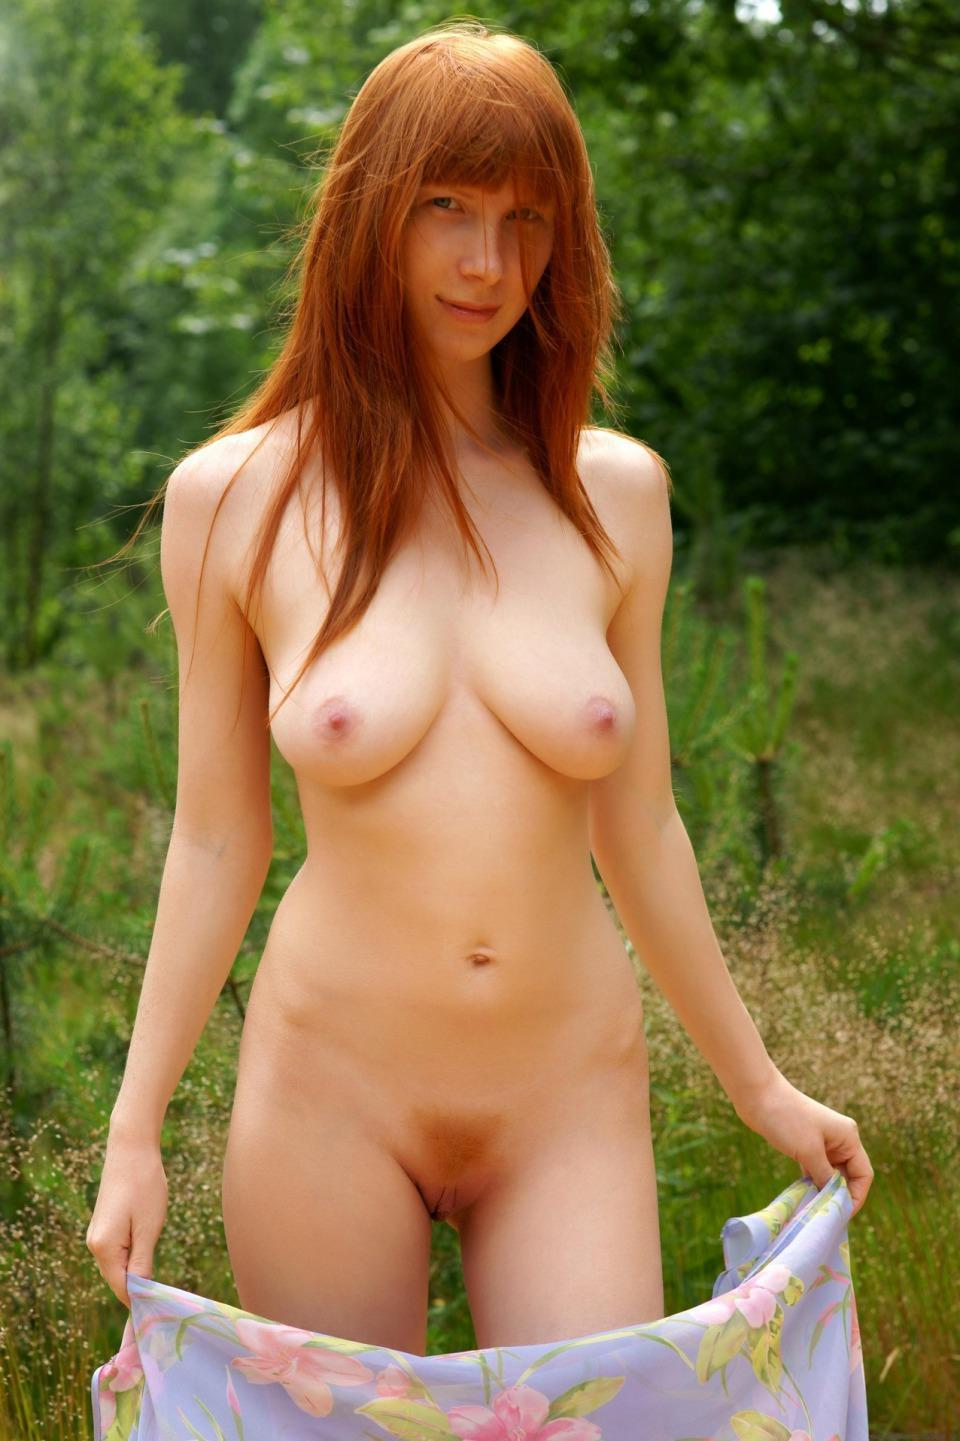 red haired woman naked